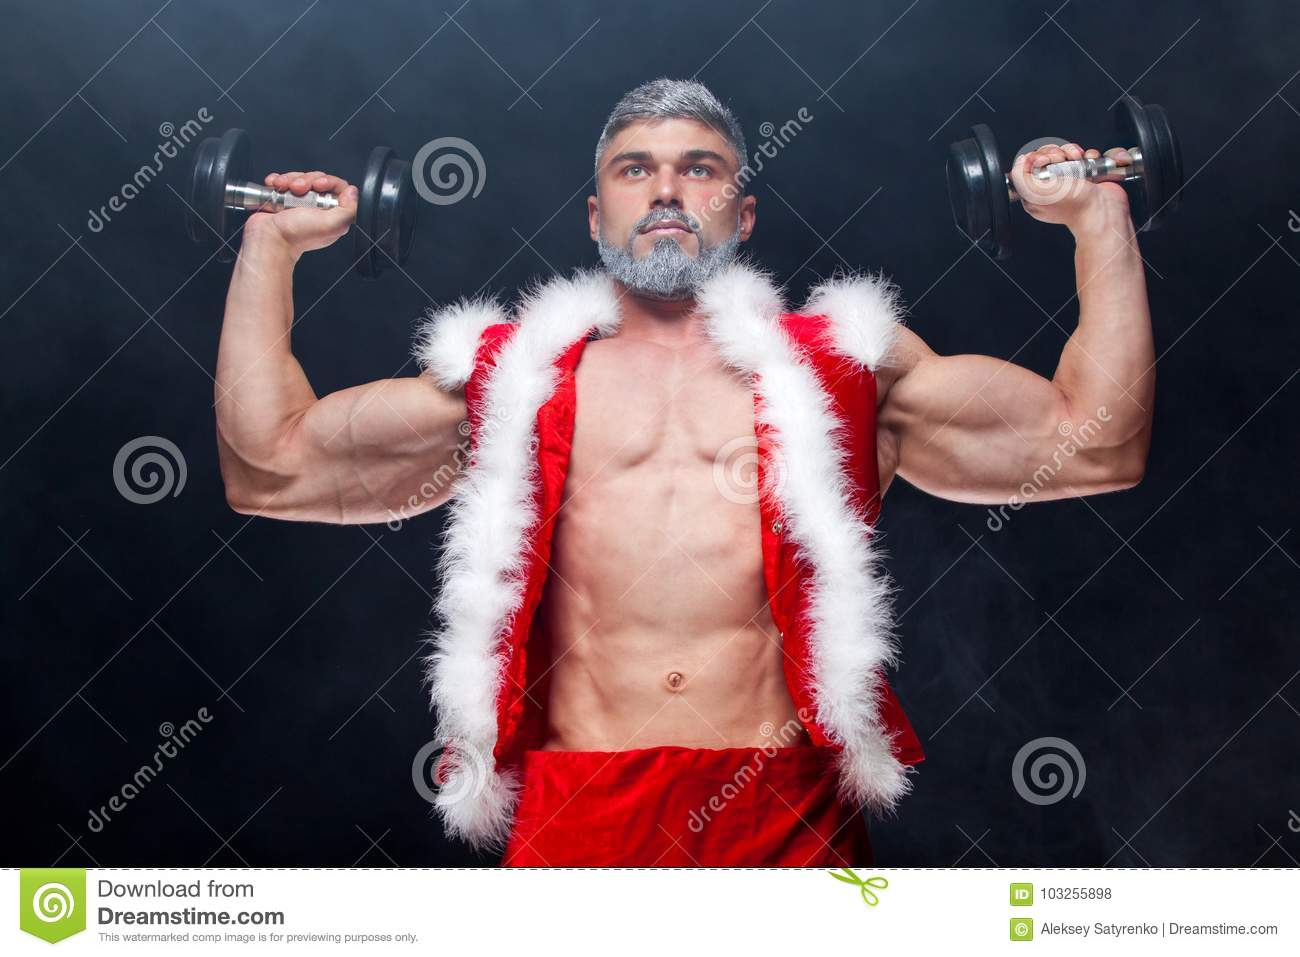 Santa sent me a muscle daddy